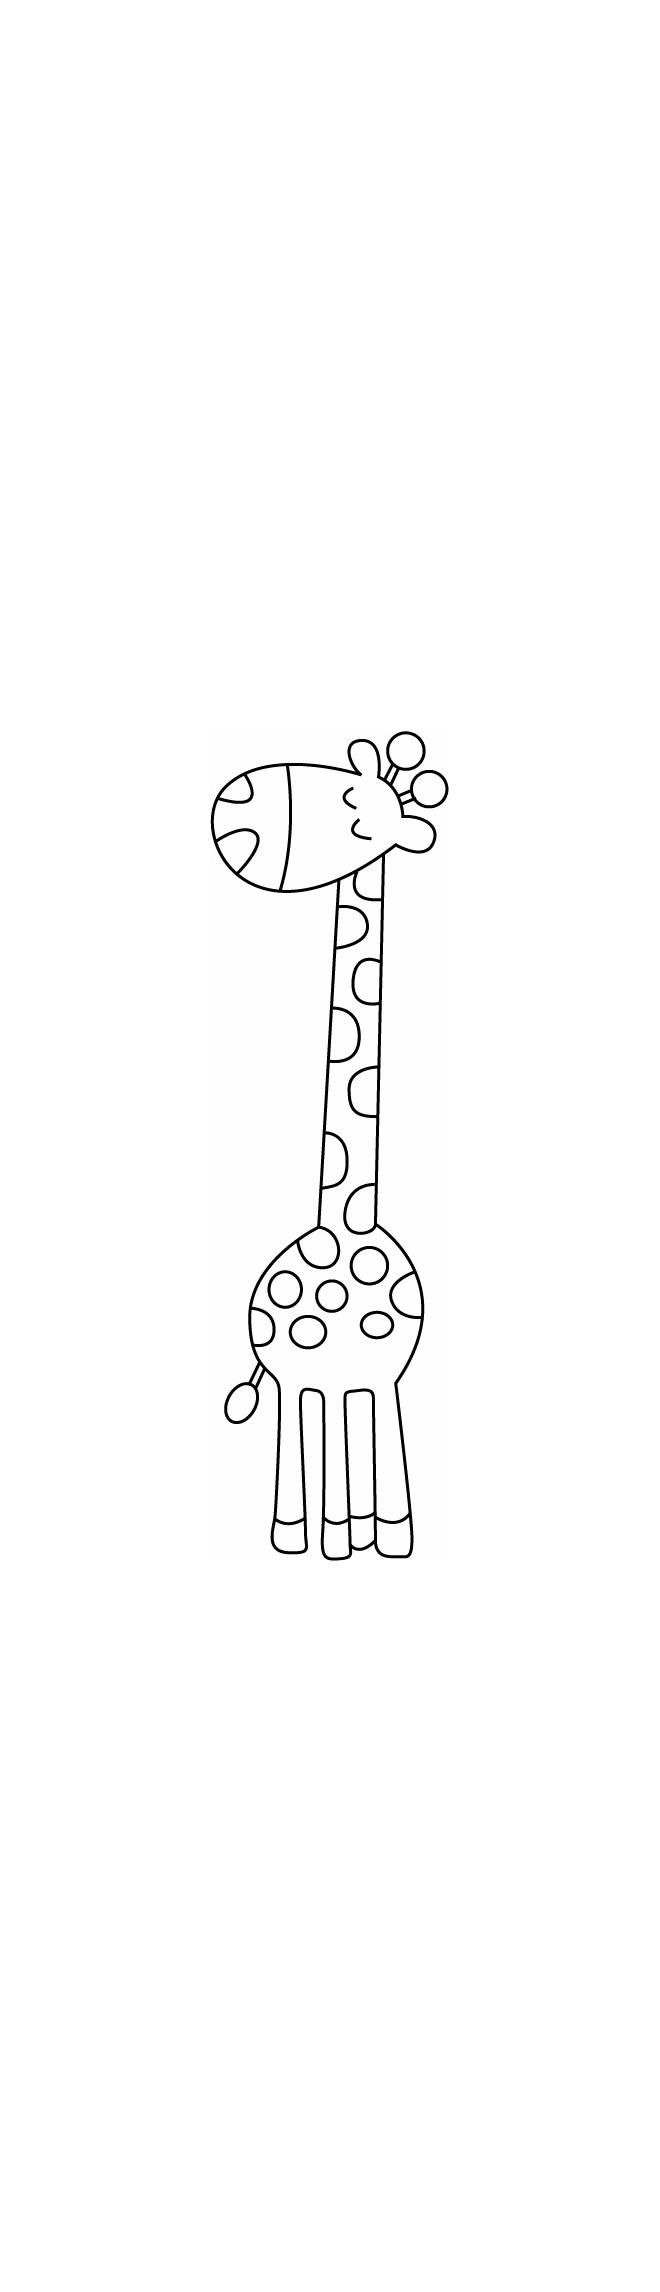 Coloriages Animaux Girafe 01